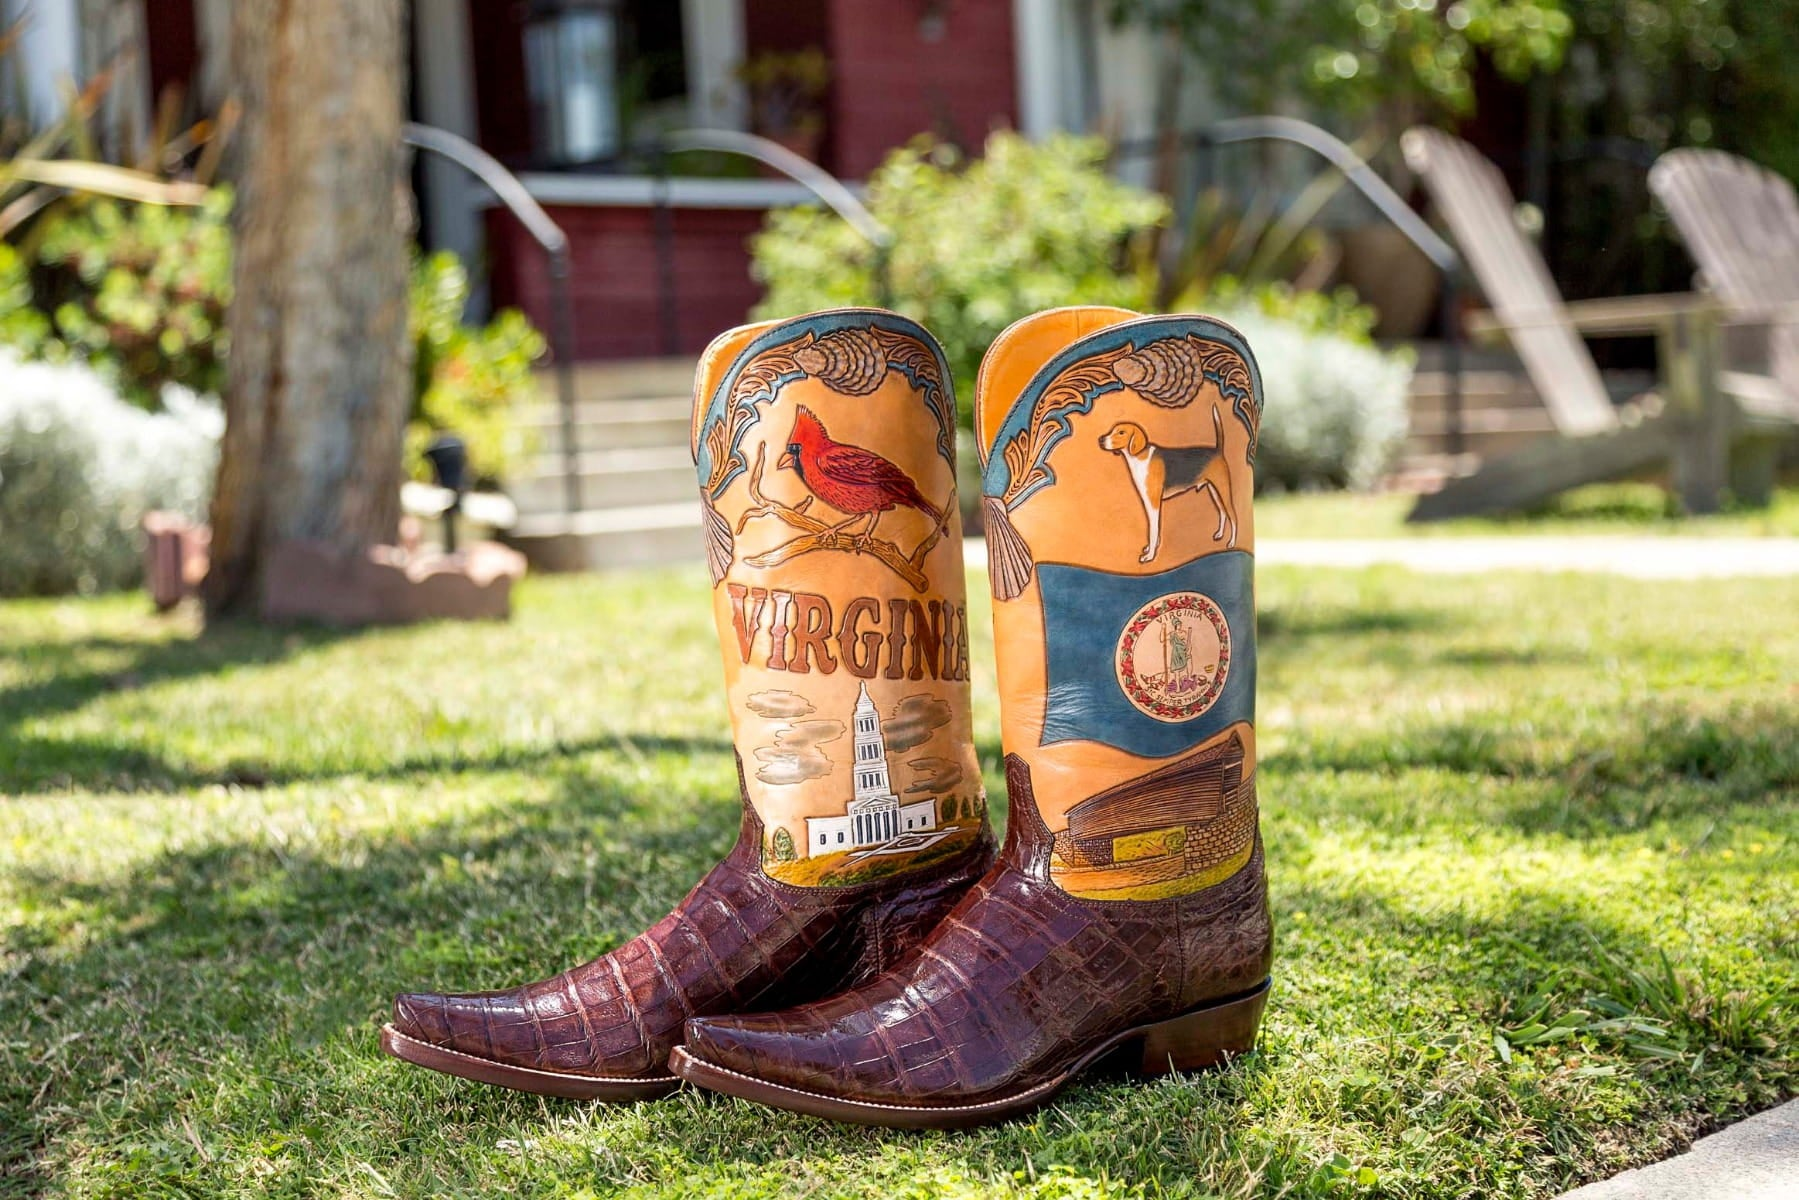 Virginia State Boot